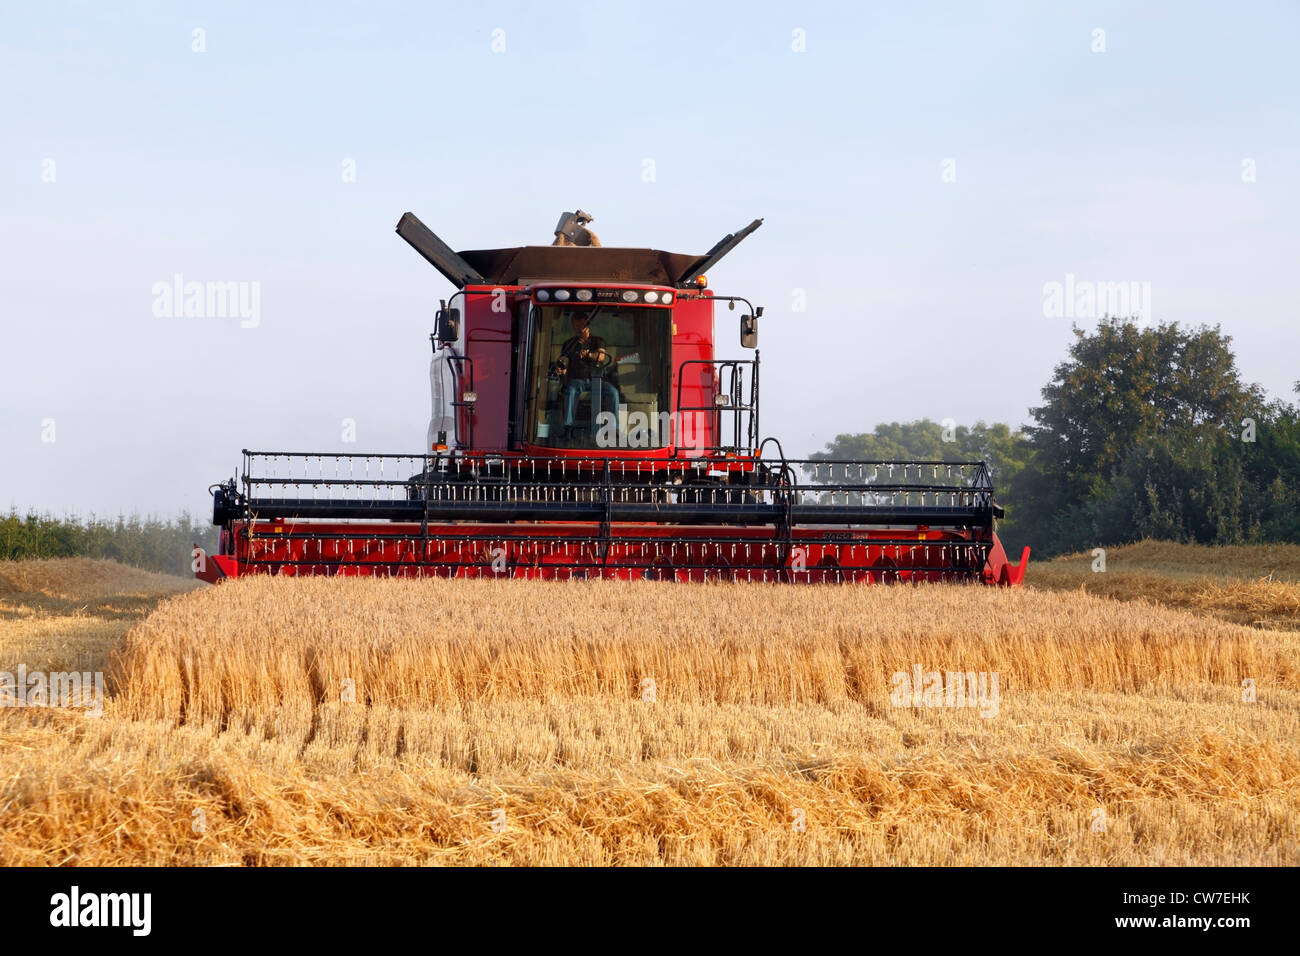 Red Case IH Axial-Flow 5088 combine harvester harvesting malting barley in a sunny late summer evening in Denmark. - Stock Image